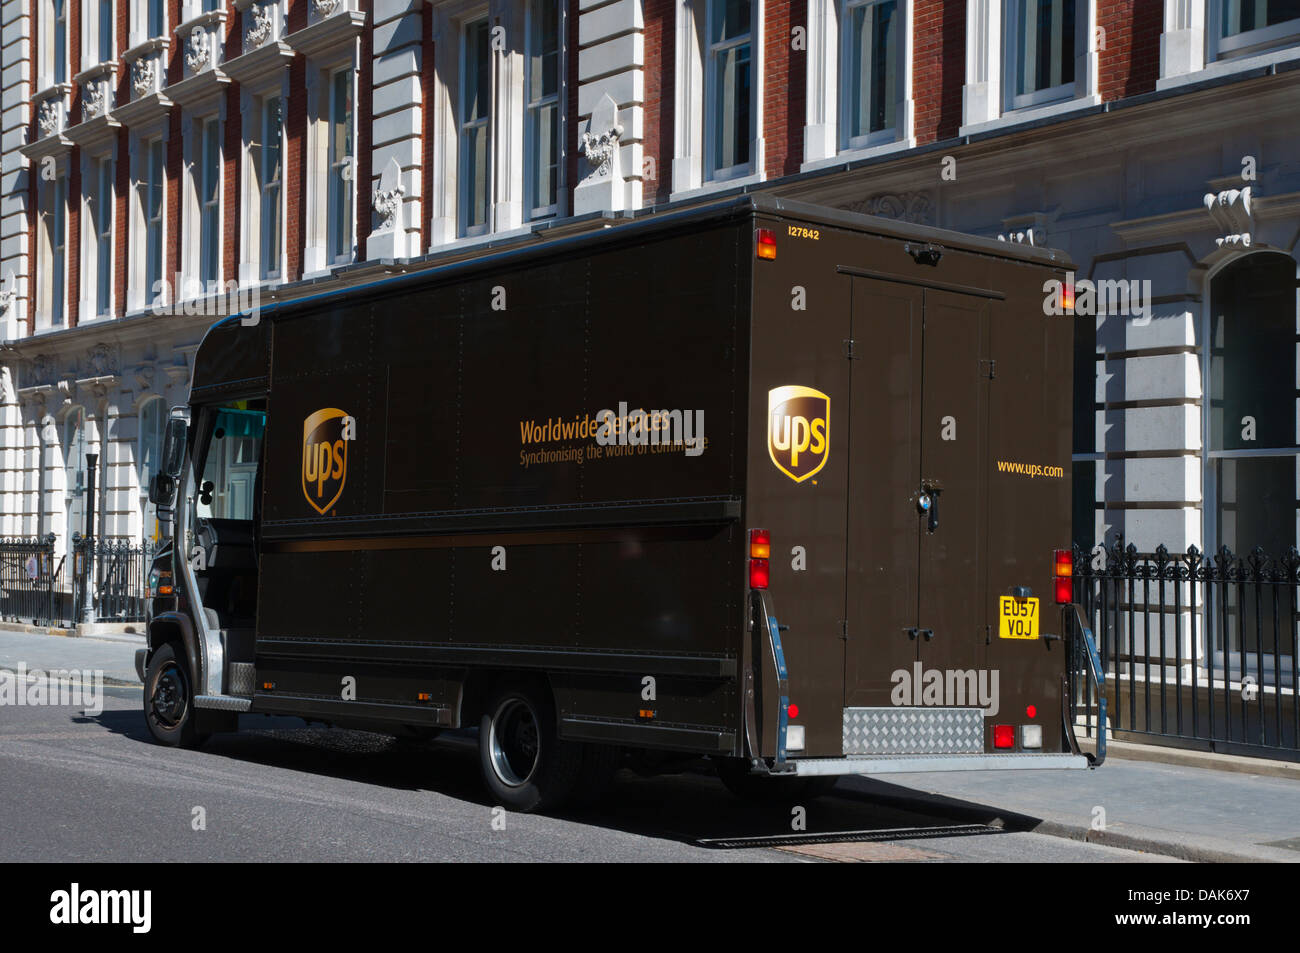 UPS delivery mail parcel service vehicle Fitzrovia district central London England Britain UK Europe - Stock Image